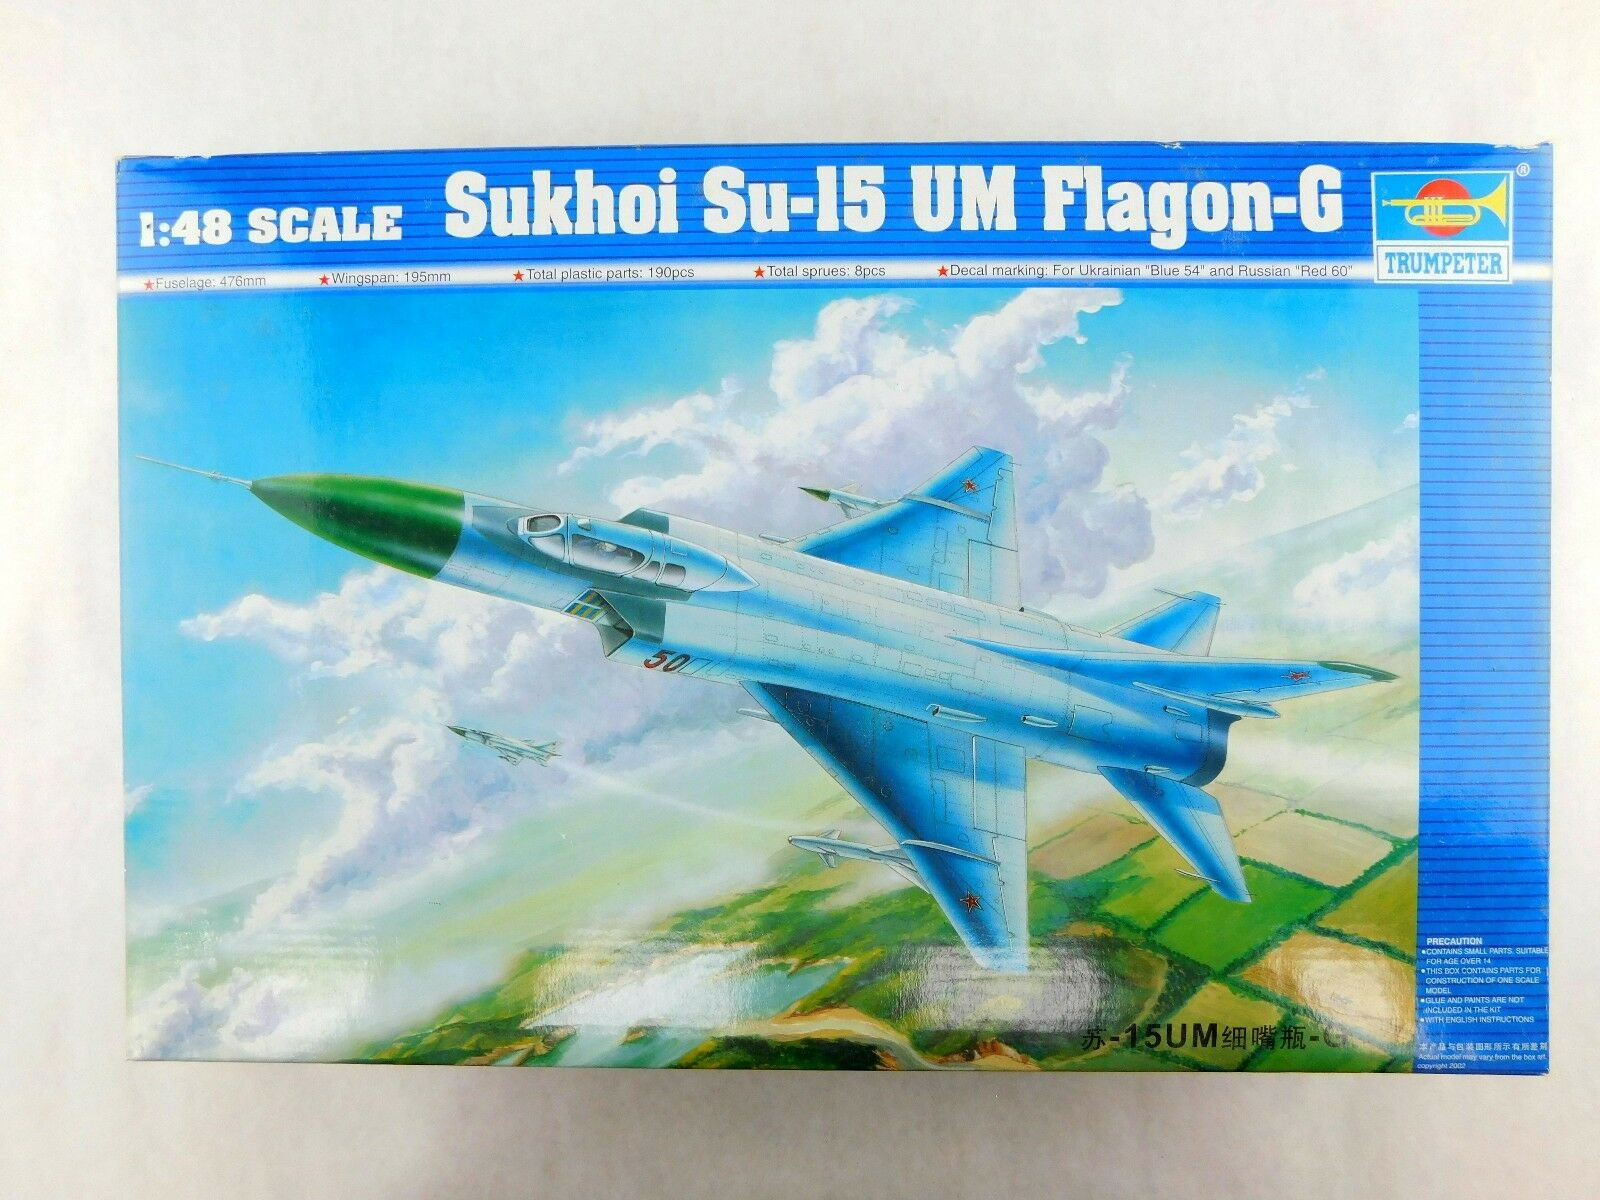 02812 Trumpeter 1 48 Model Sukhoi Su-15 UM Flagon-G Plane Aircraft Warplane Kit